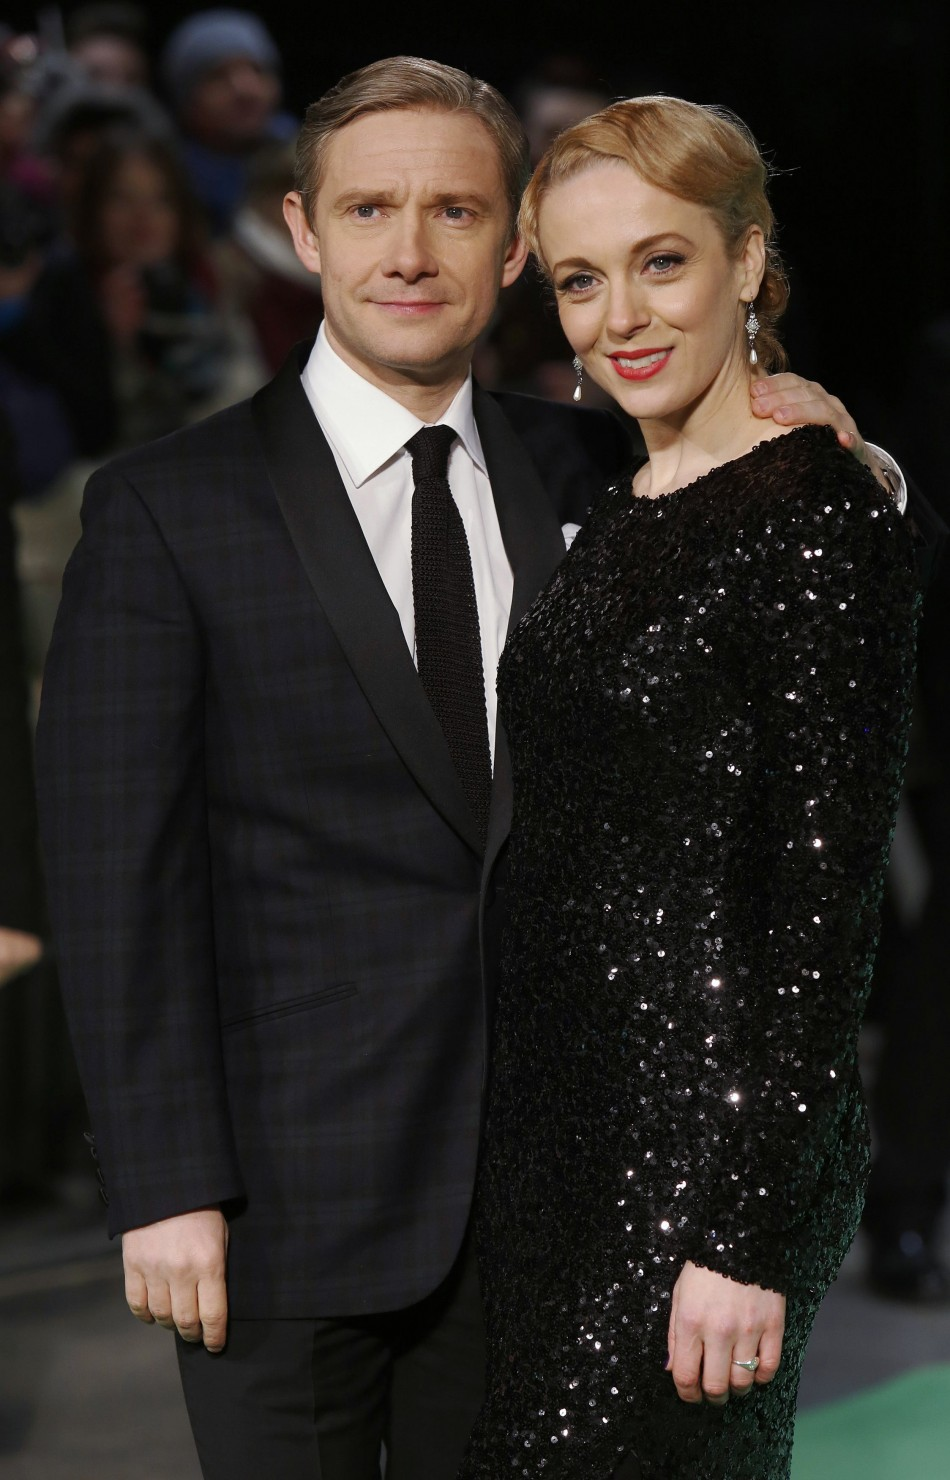 Actor Martin Freeman and his partner Amanda Abbington arrive for the royal premiere of the film The Hobbit - An Unexpected Journey in central London